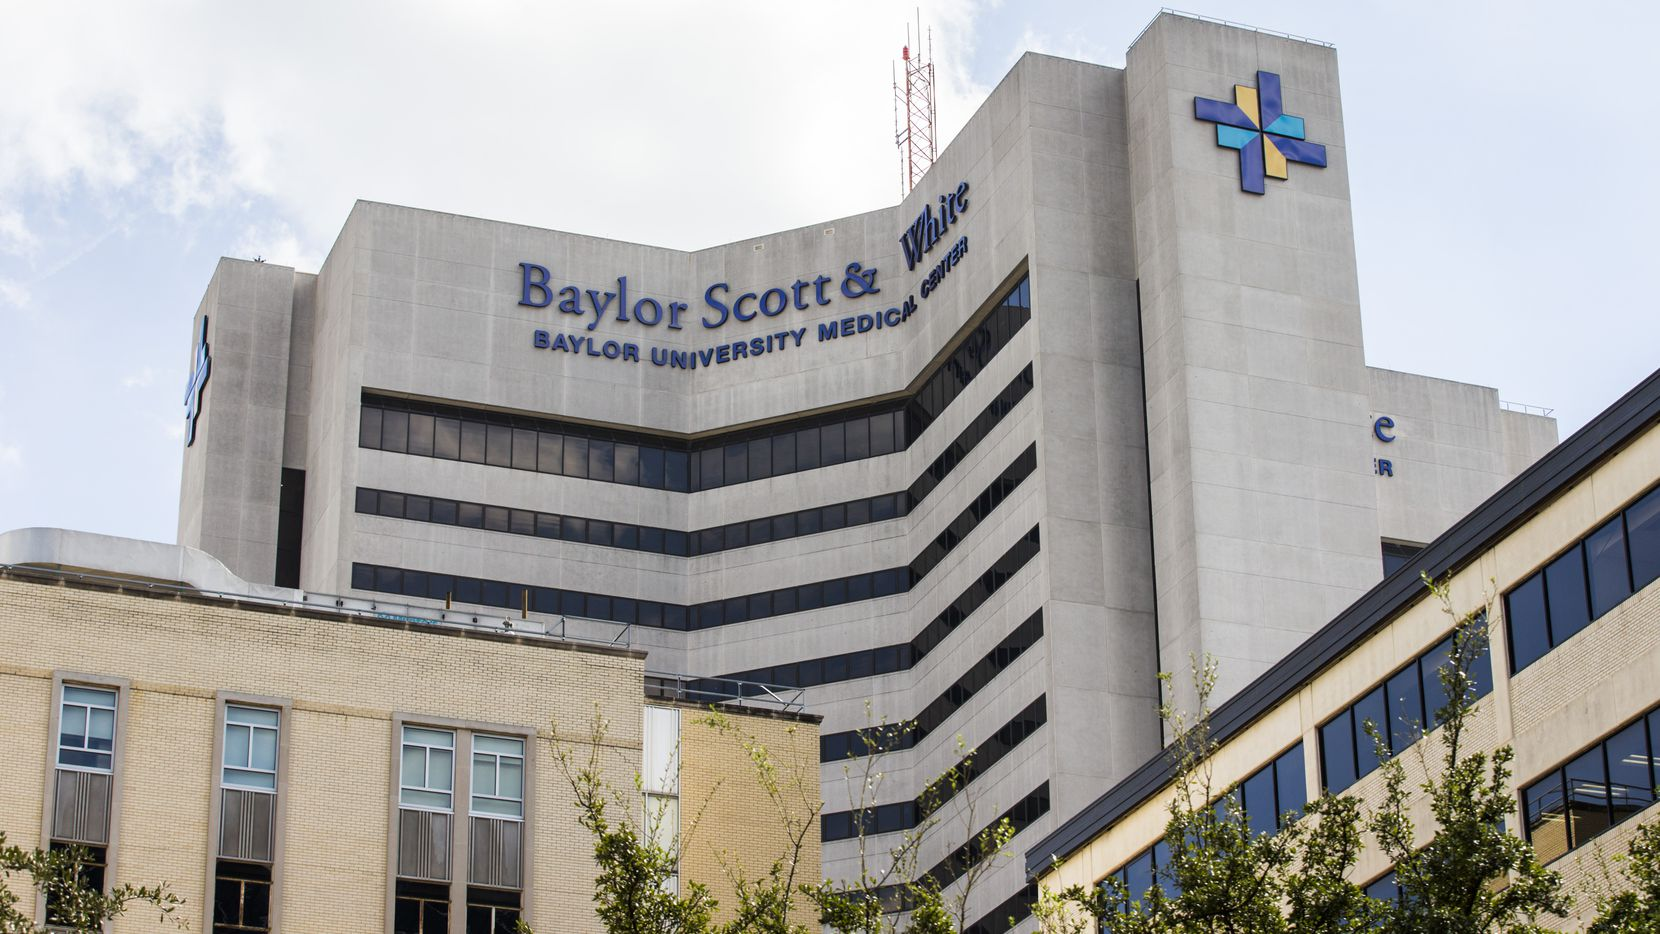 El Hospital Baylor University Medical Center es uno de los principales centros de salud en Dallas.